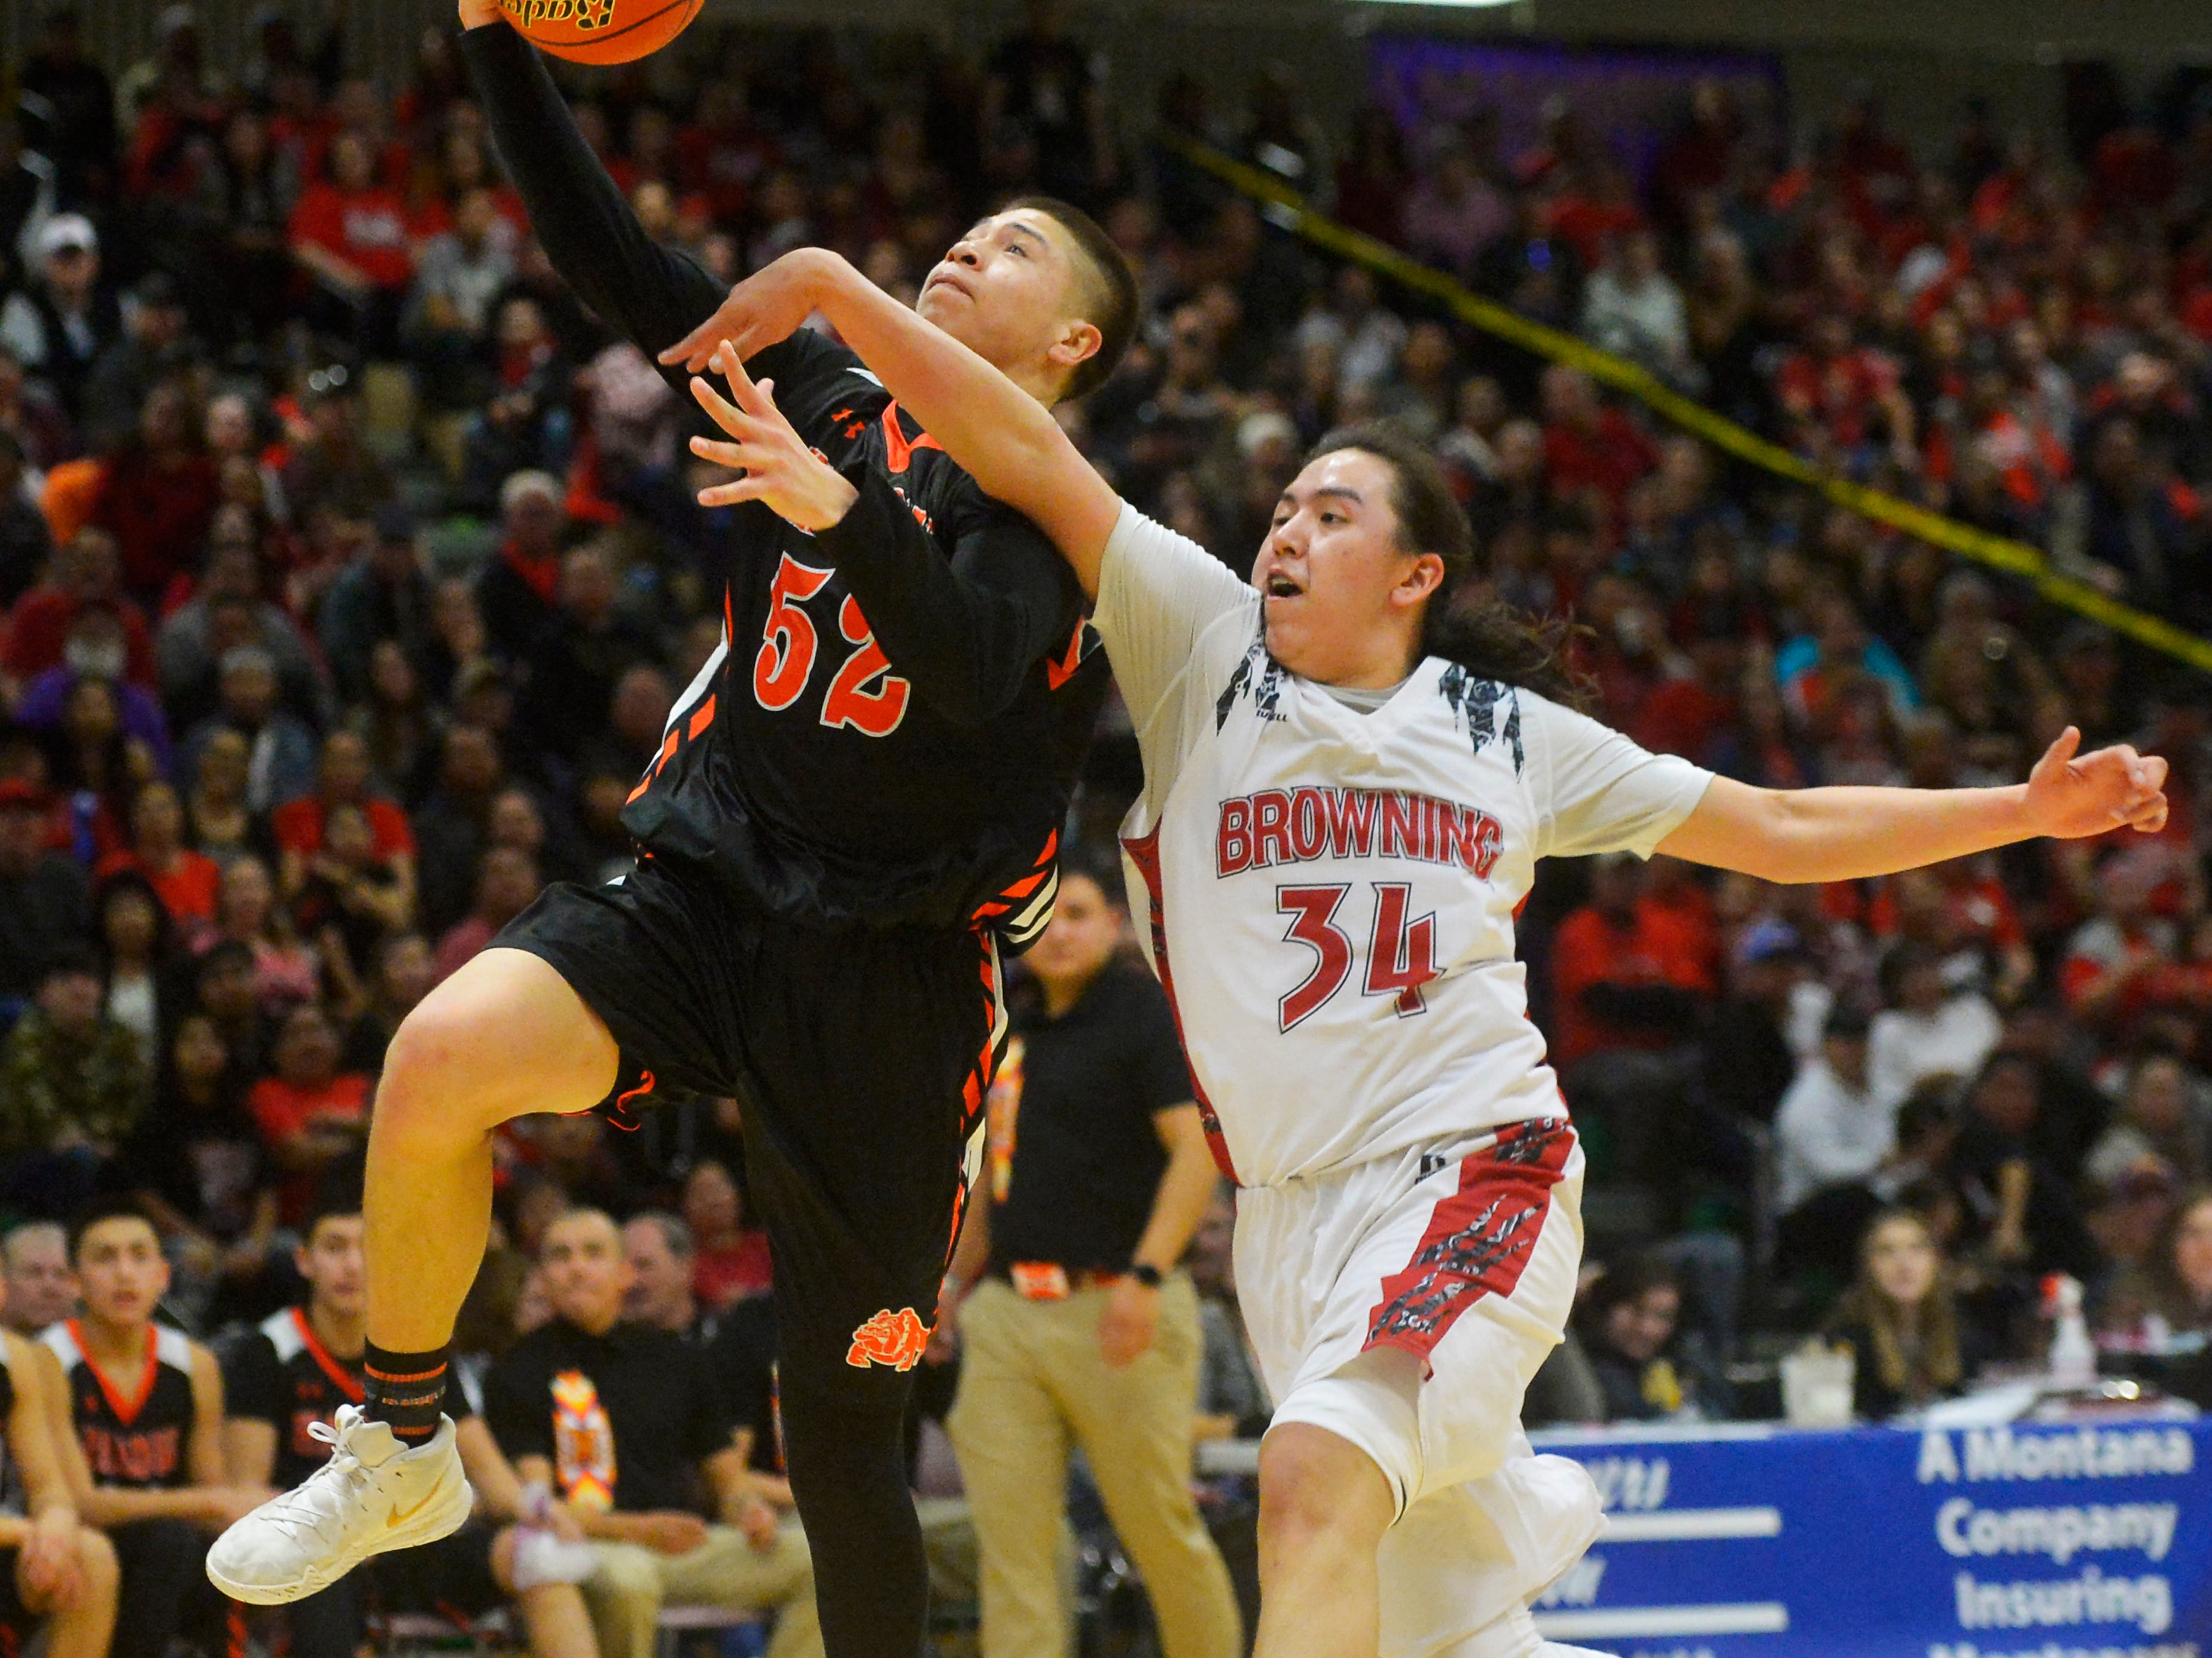 Hardin's Famous Lefthand goes in for a layup as Browning's Deion Mad Plume defends during the Class A State Basketball Tournament in the Four Seasons Arena, Thursday.